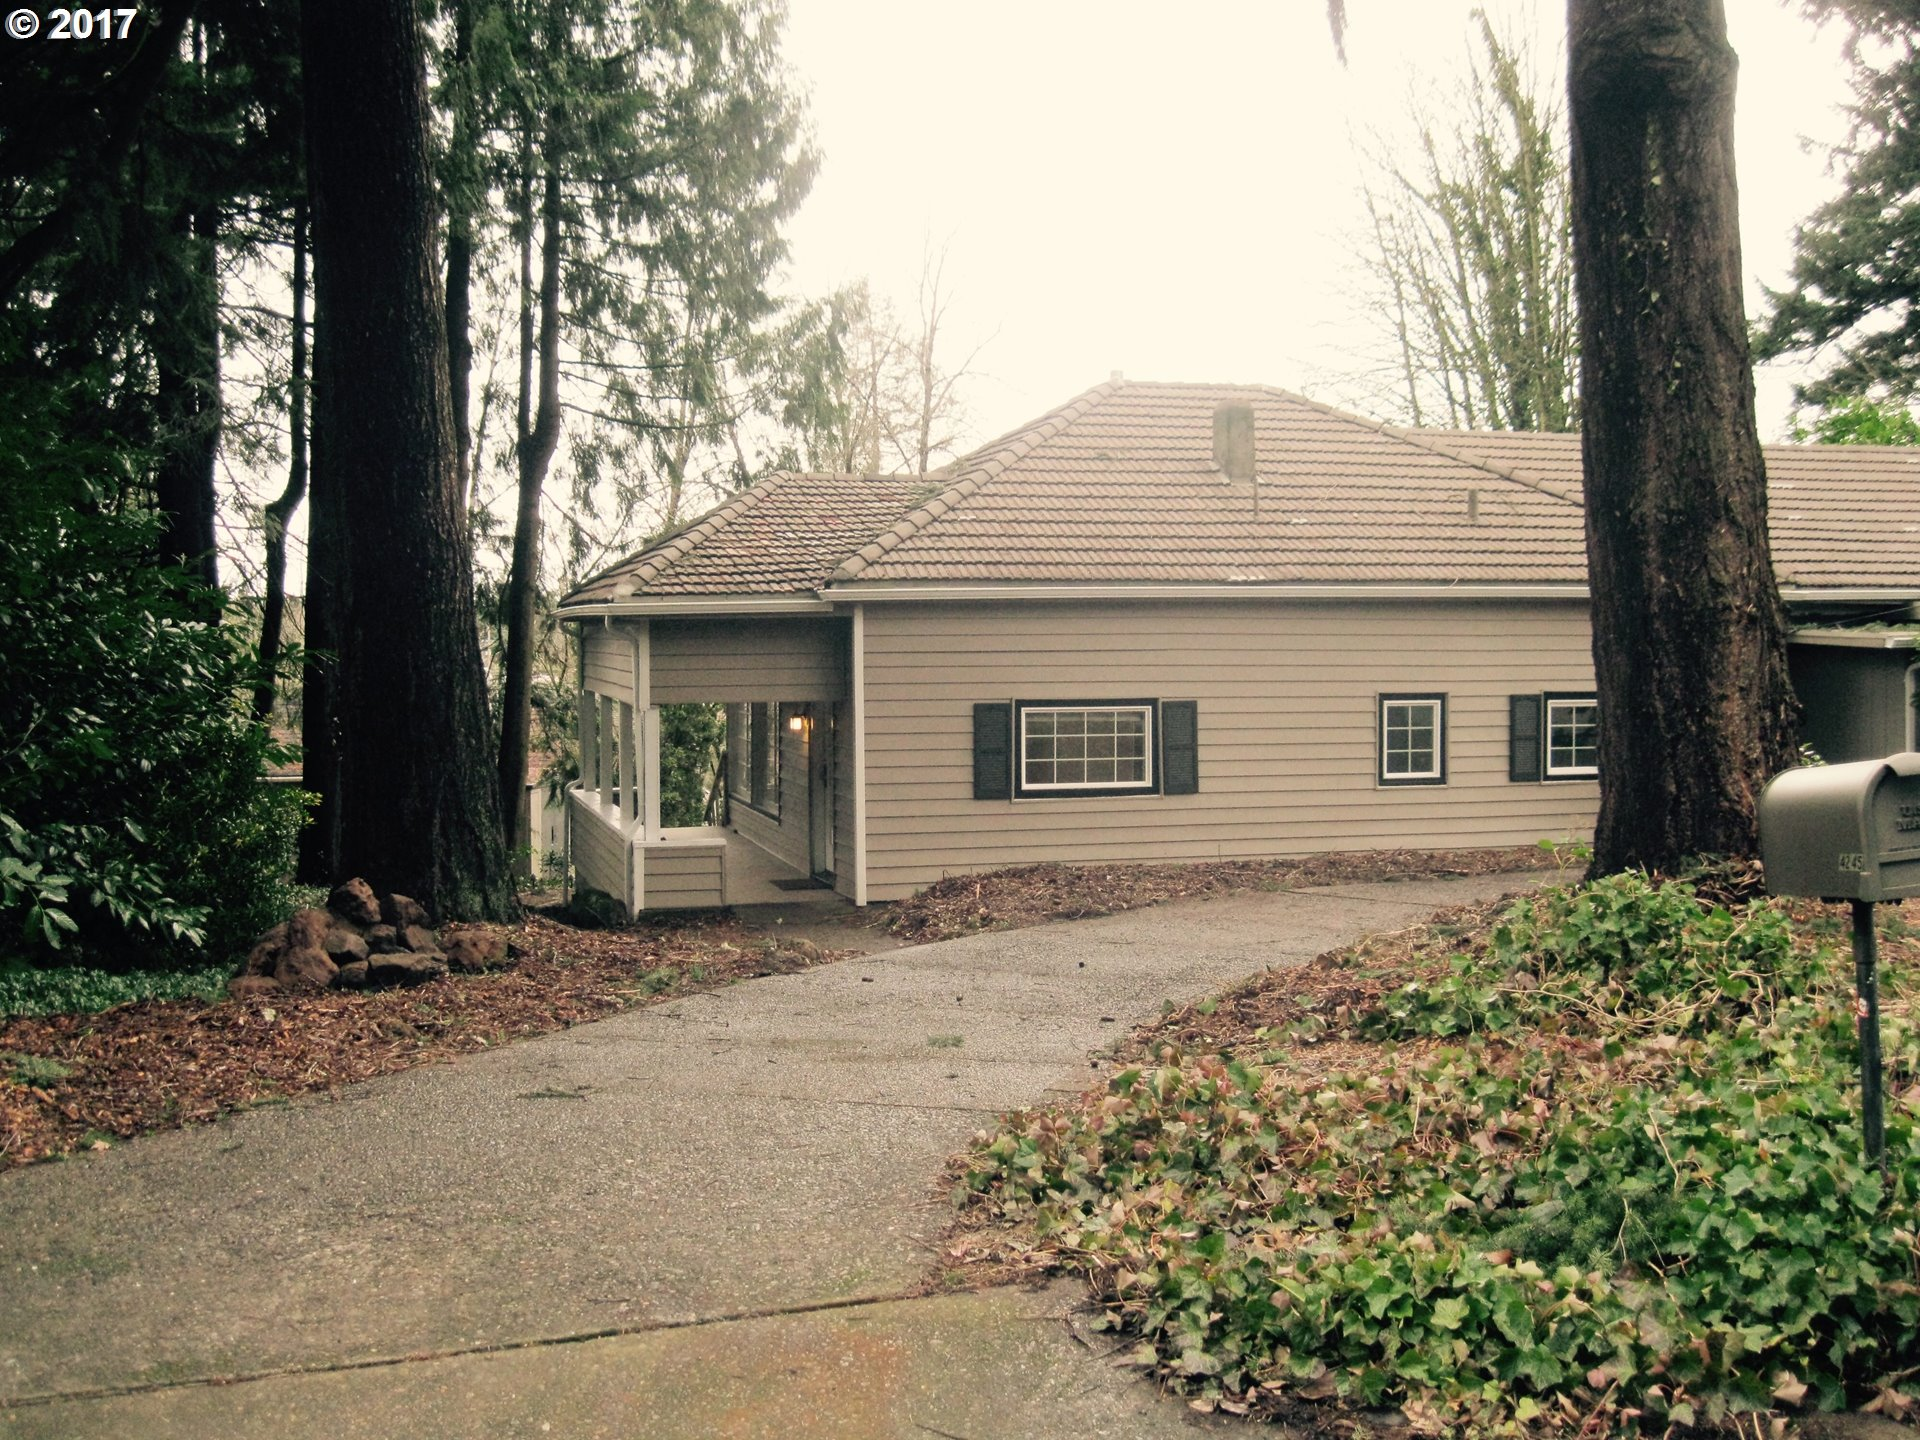 4245 SW ALFRED ST Portland, OR 97219 - MLS #: 17417711